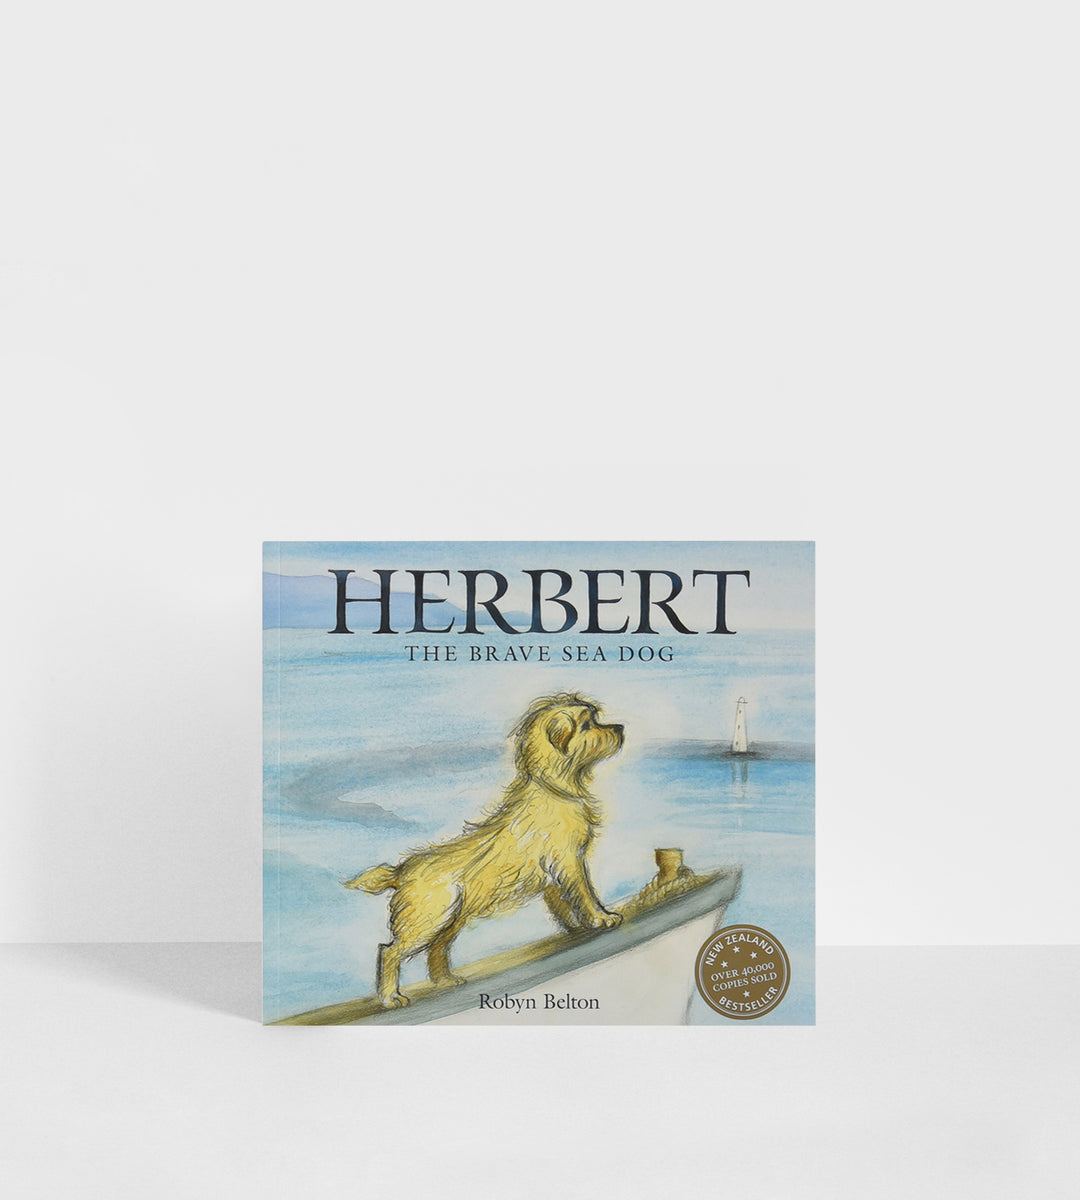 Herbert: The Brave Sea Dog | by Robyn Belton